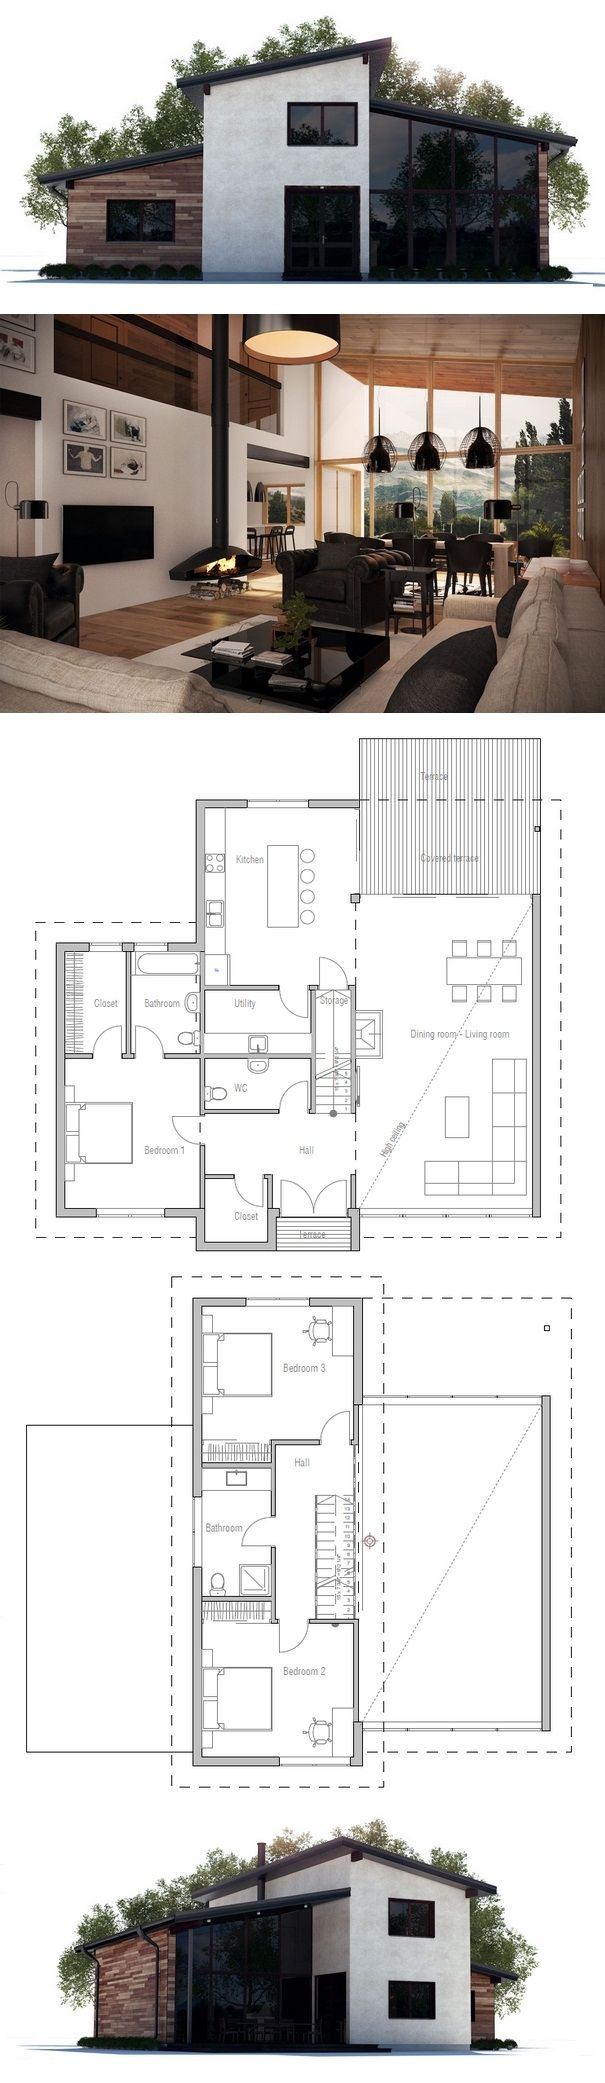 1000 images about floor plans on pinterest